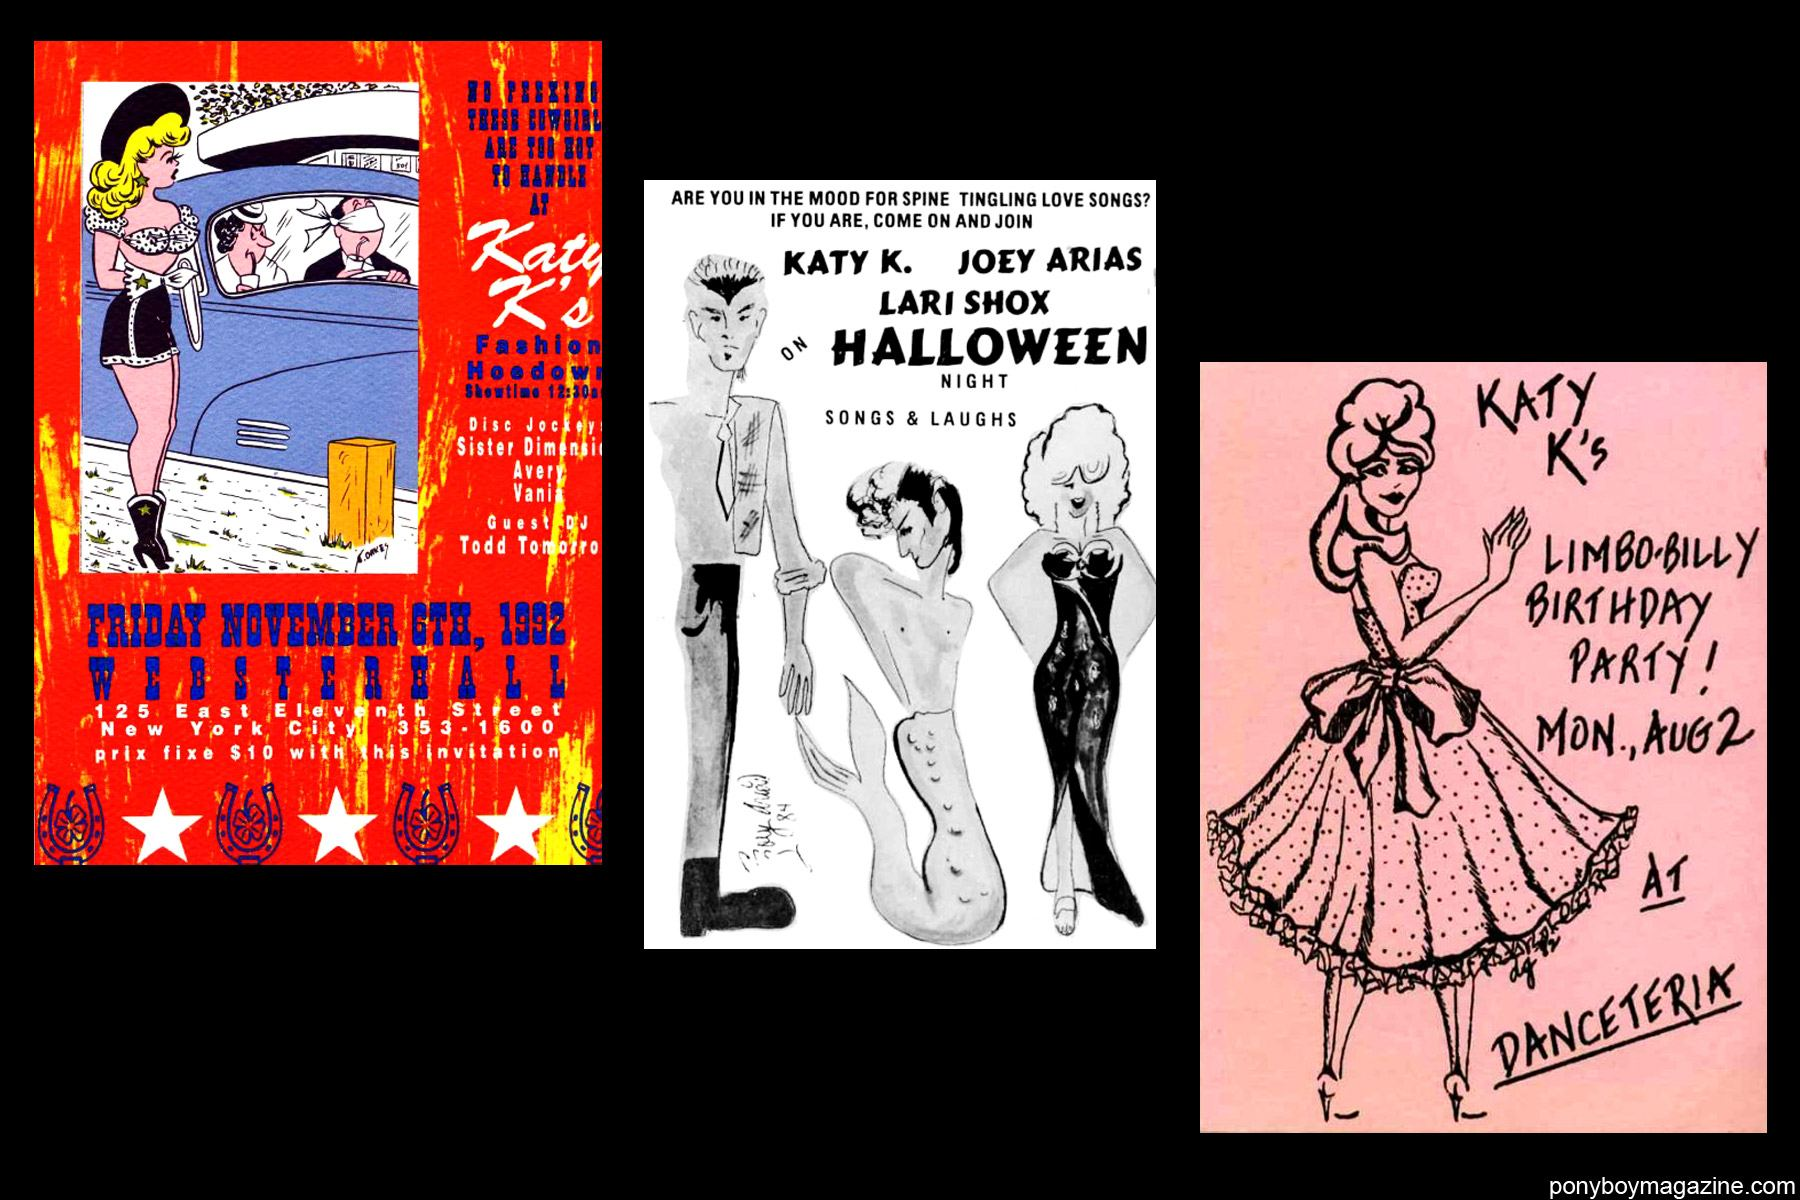 Old NYC nightclub flyers of Katy K and Joey Arias for Ponyboy Magazine.